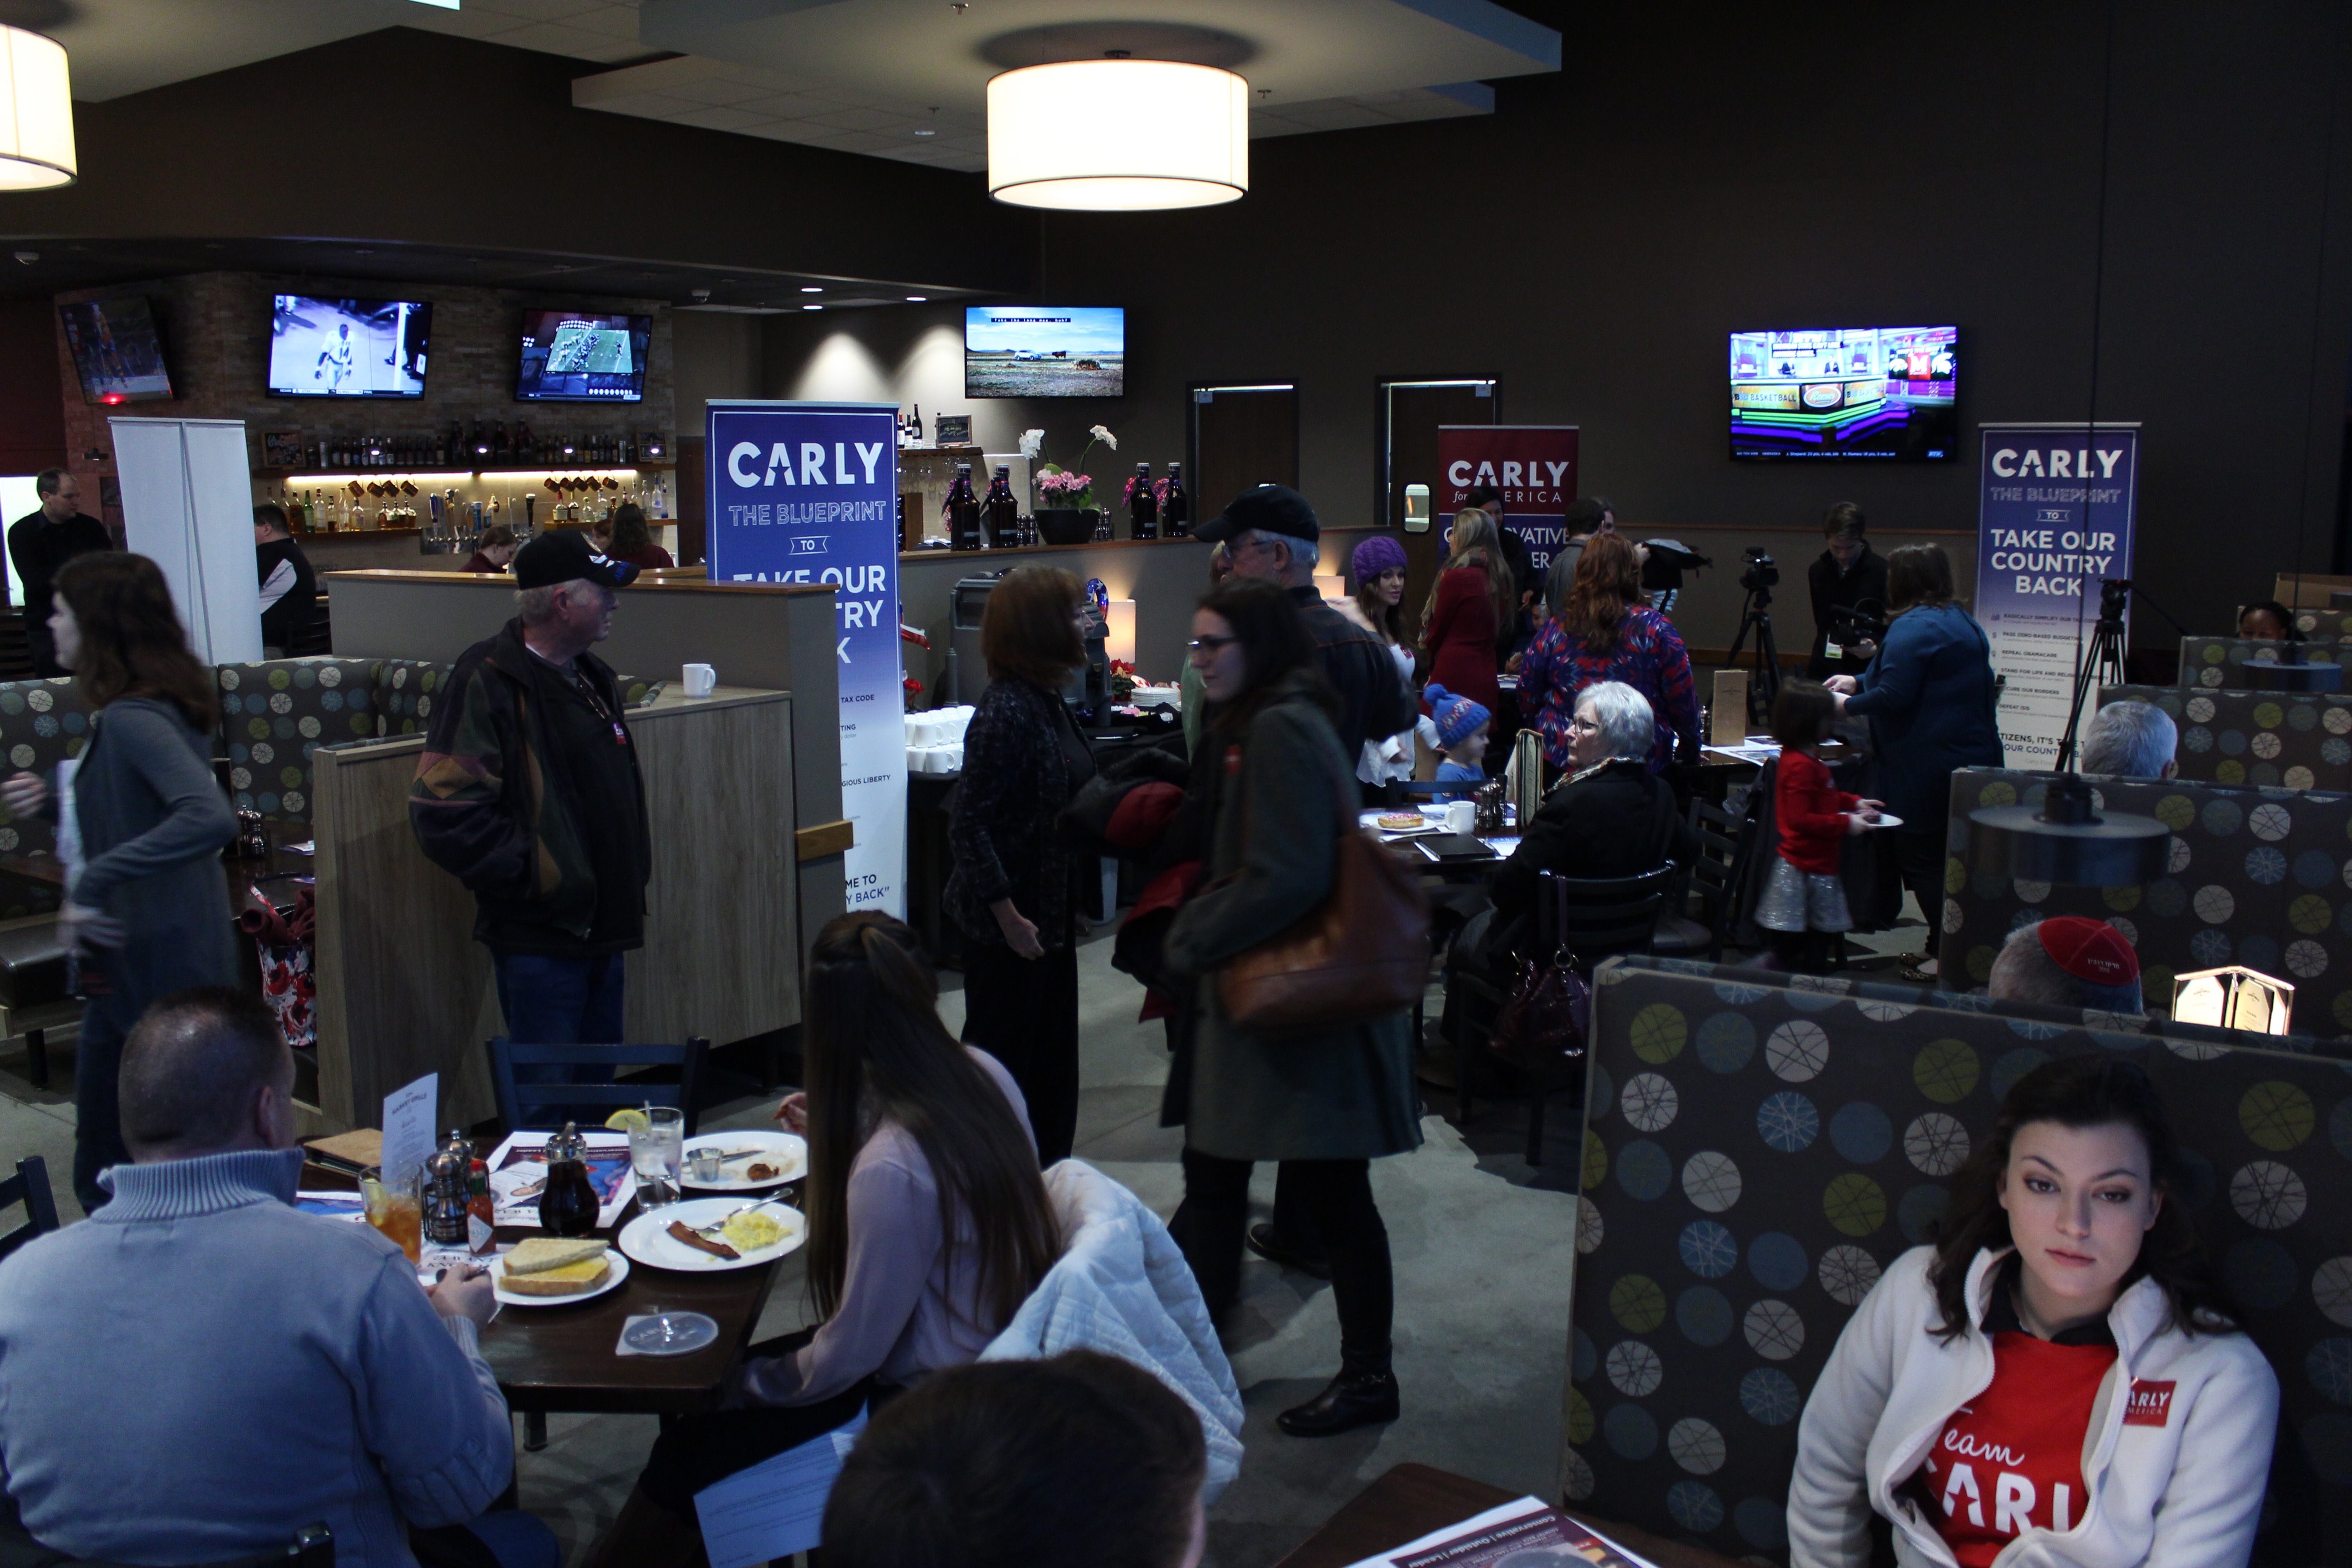 Iowa citizens, volunteers and curious citizens gather to hear Carly Fiorina speak.